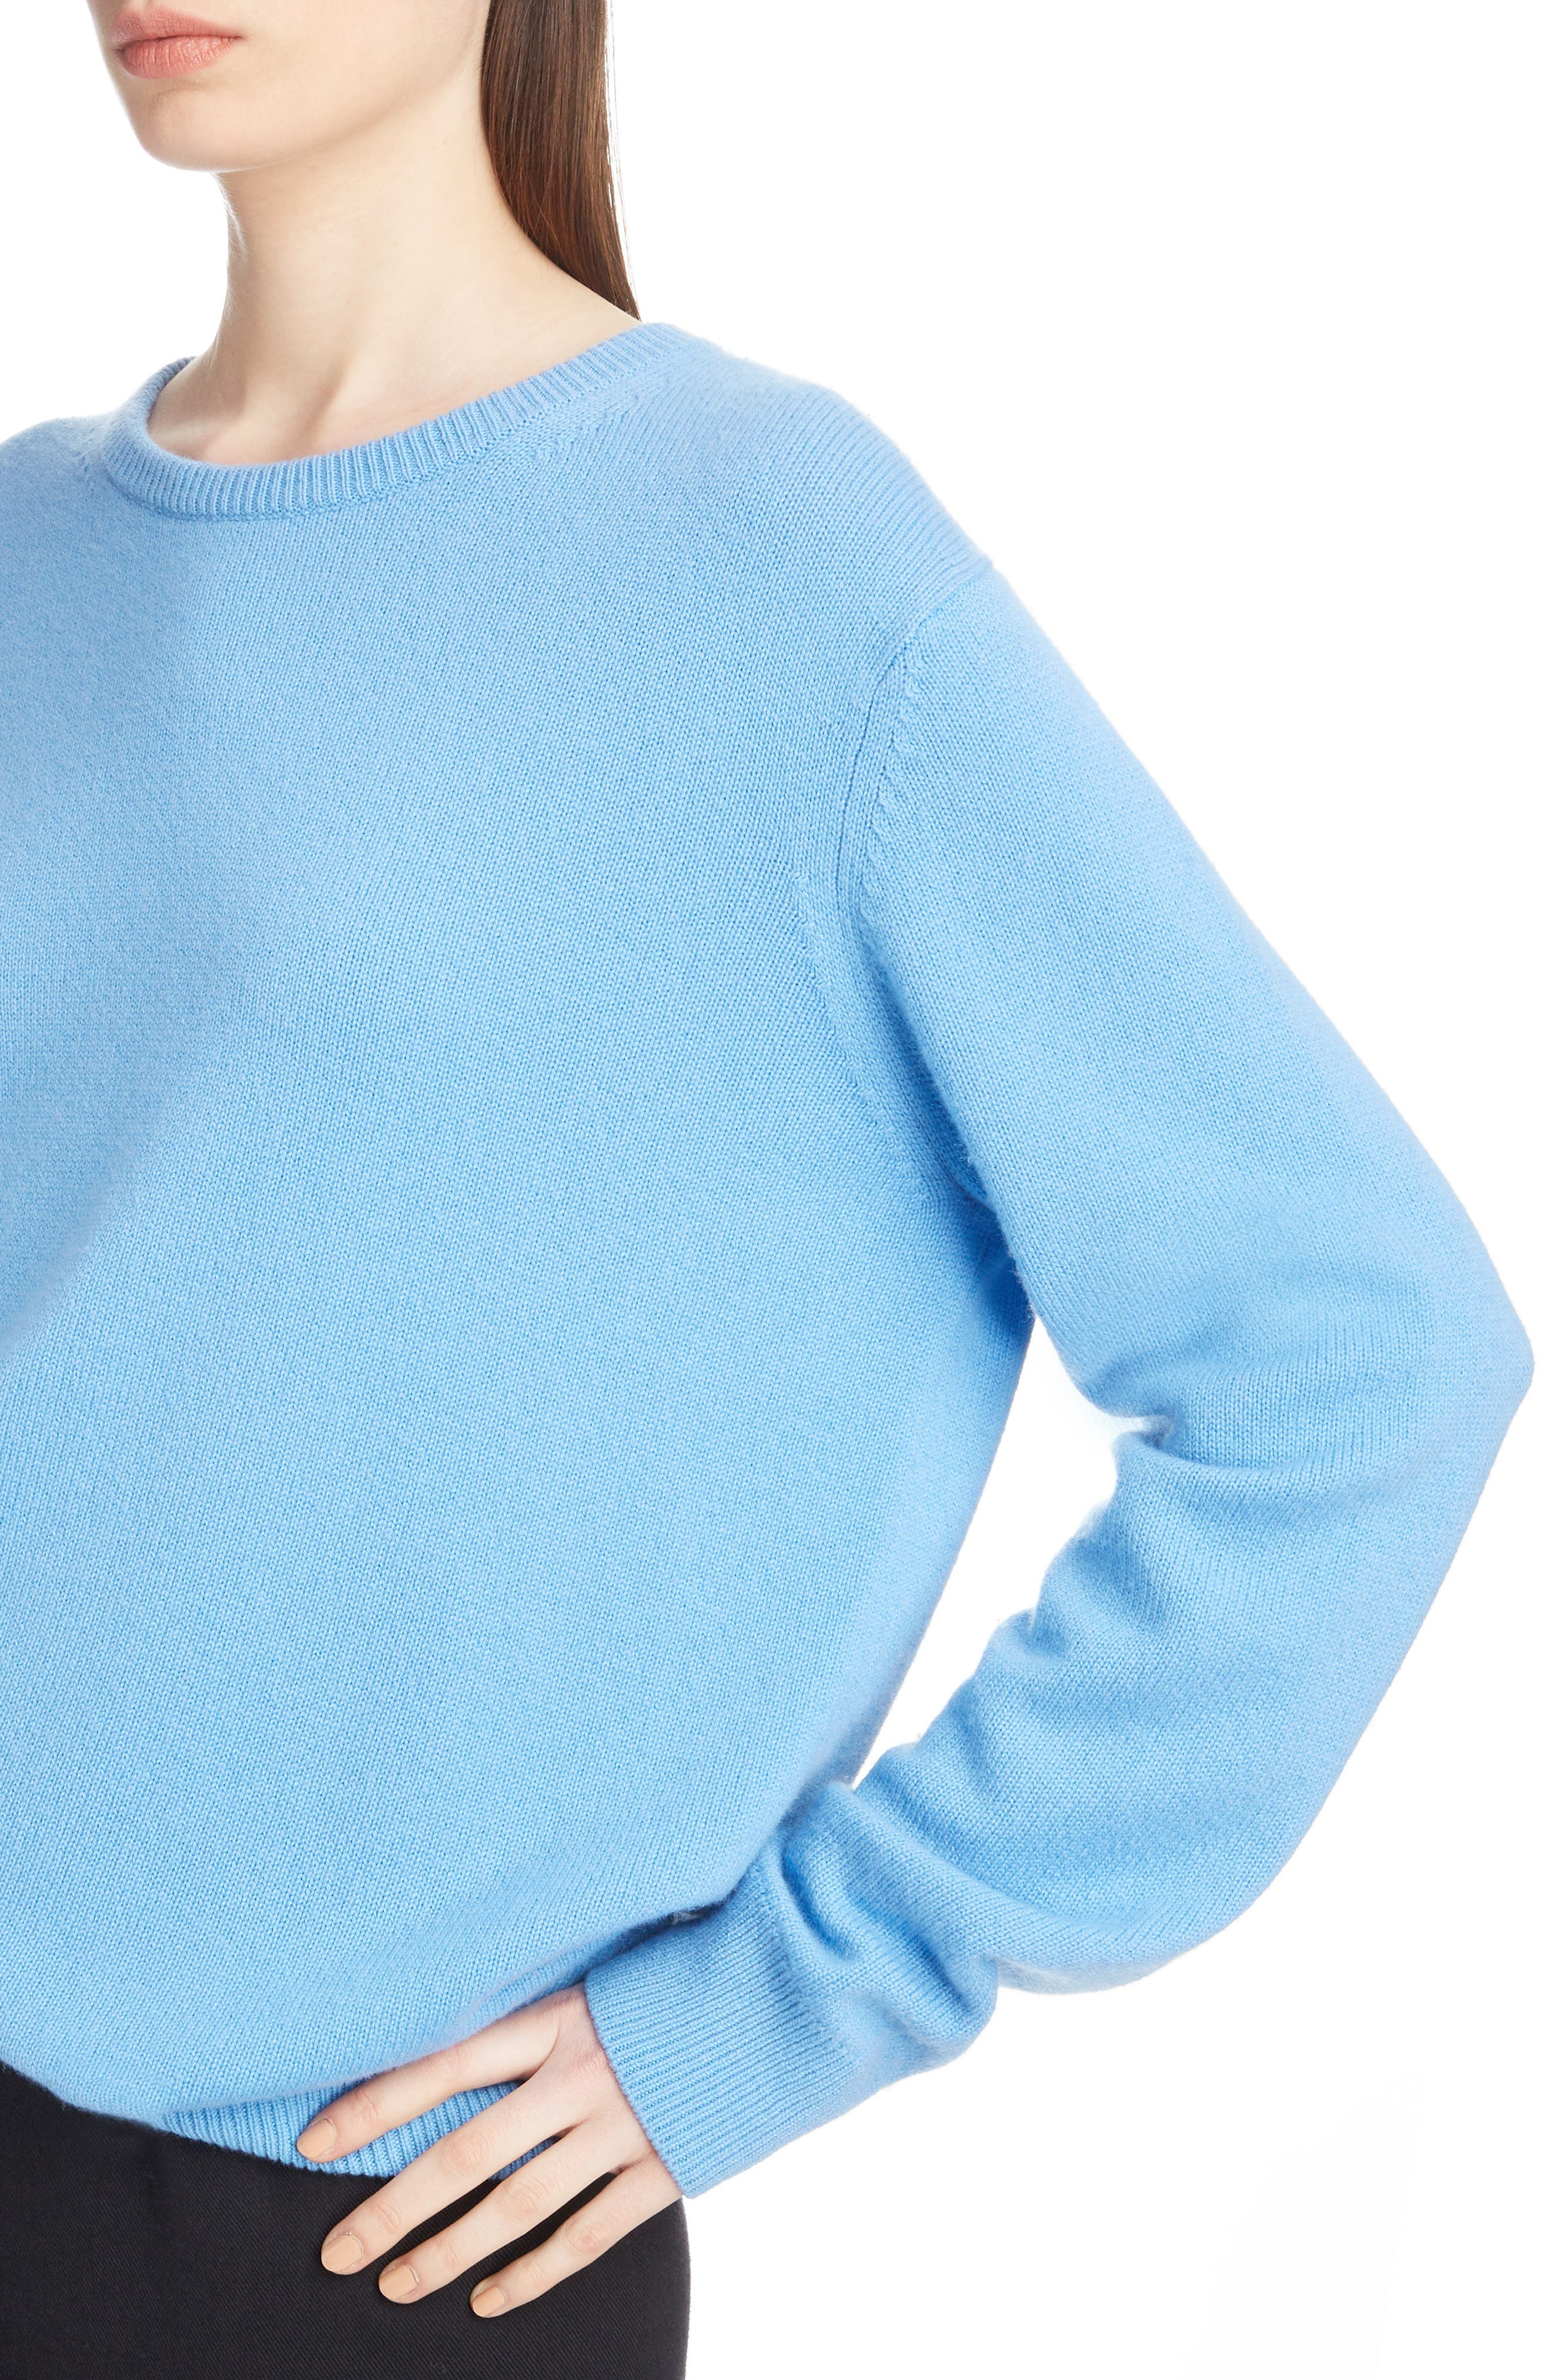 Relaxed Cashmere Sweater,                             Alternate thumbnail 4, color,                             400